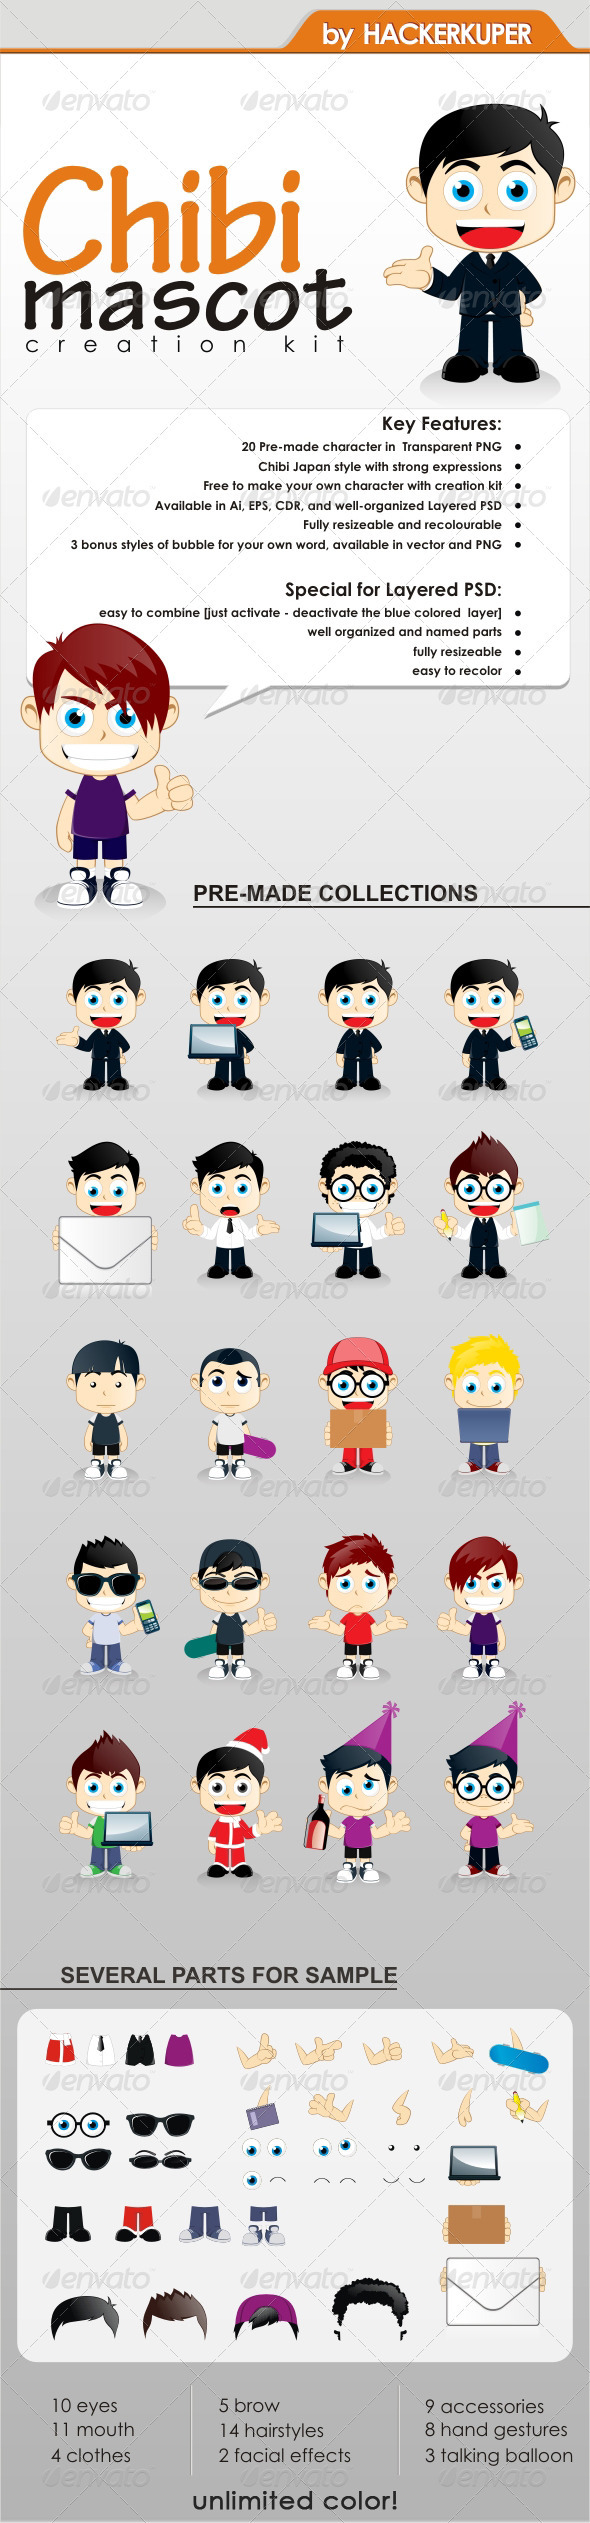 GraphicRiver Chibi Mascot Creation Kit For General Business 1251174